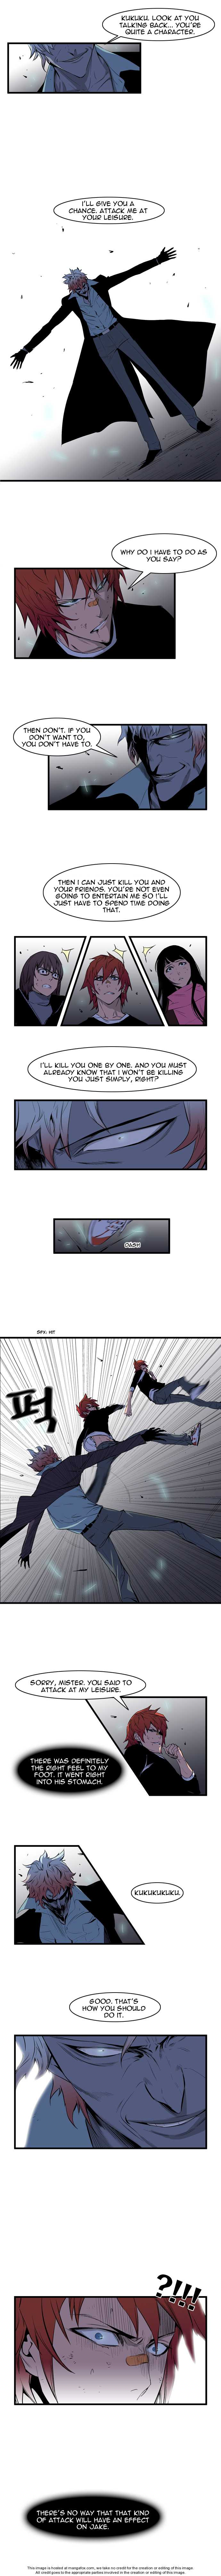 Noblesse 69 Page 2